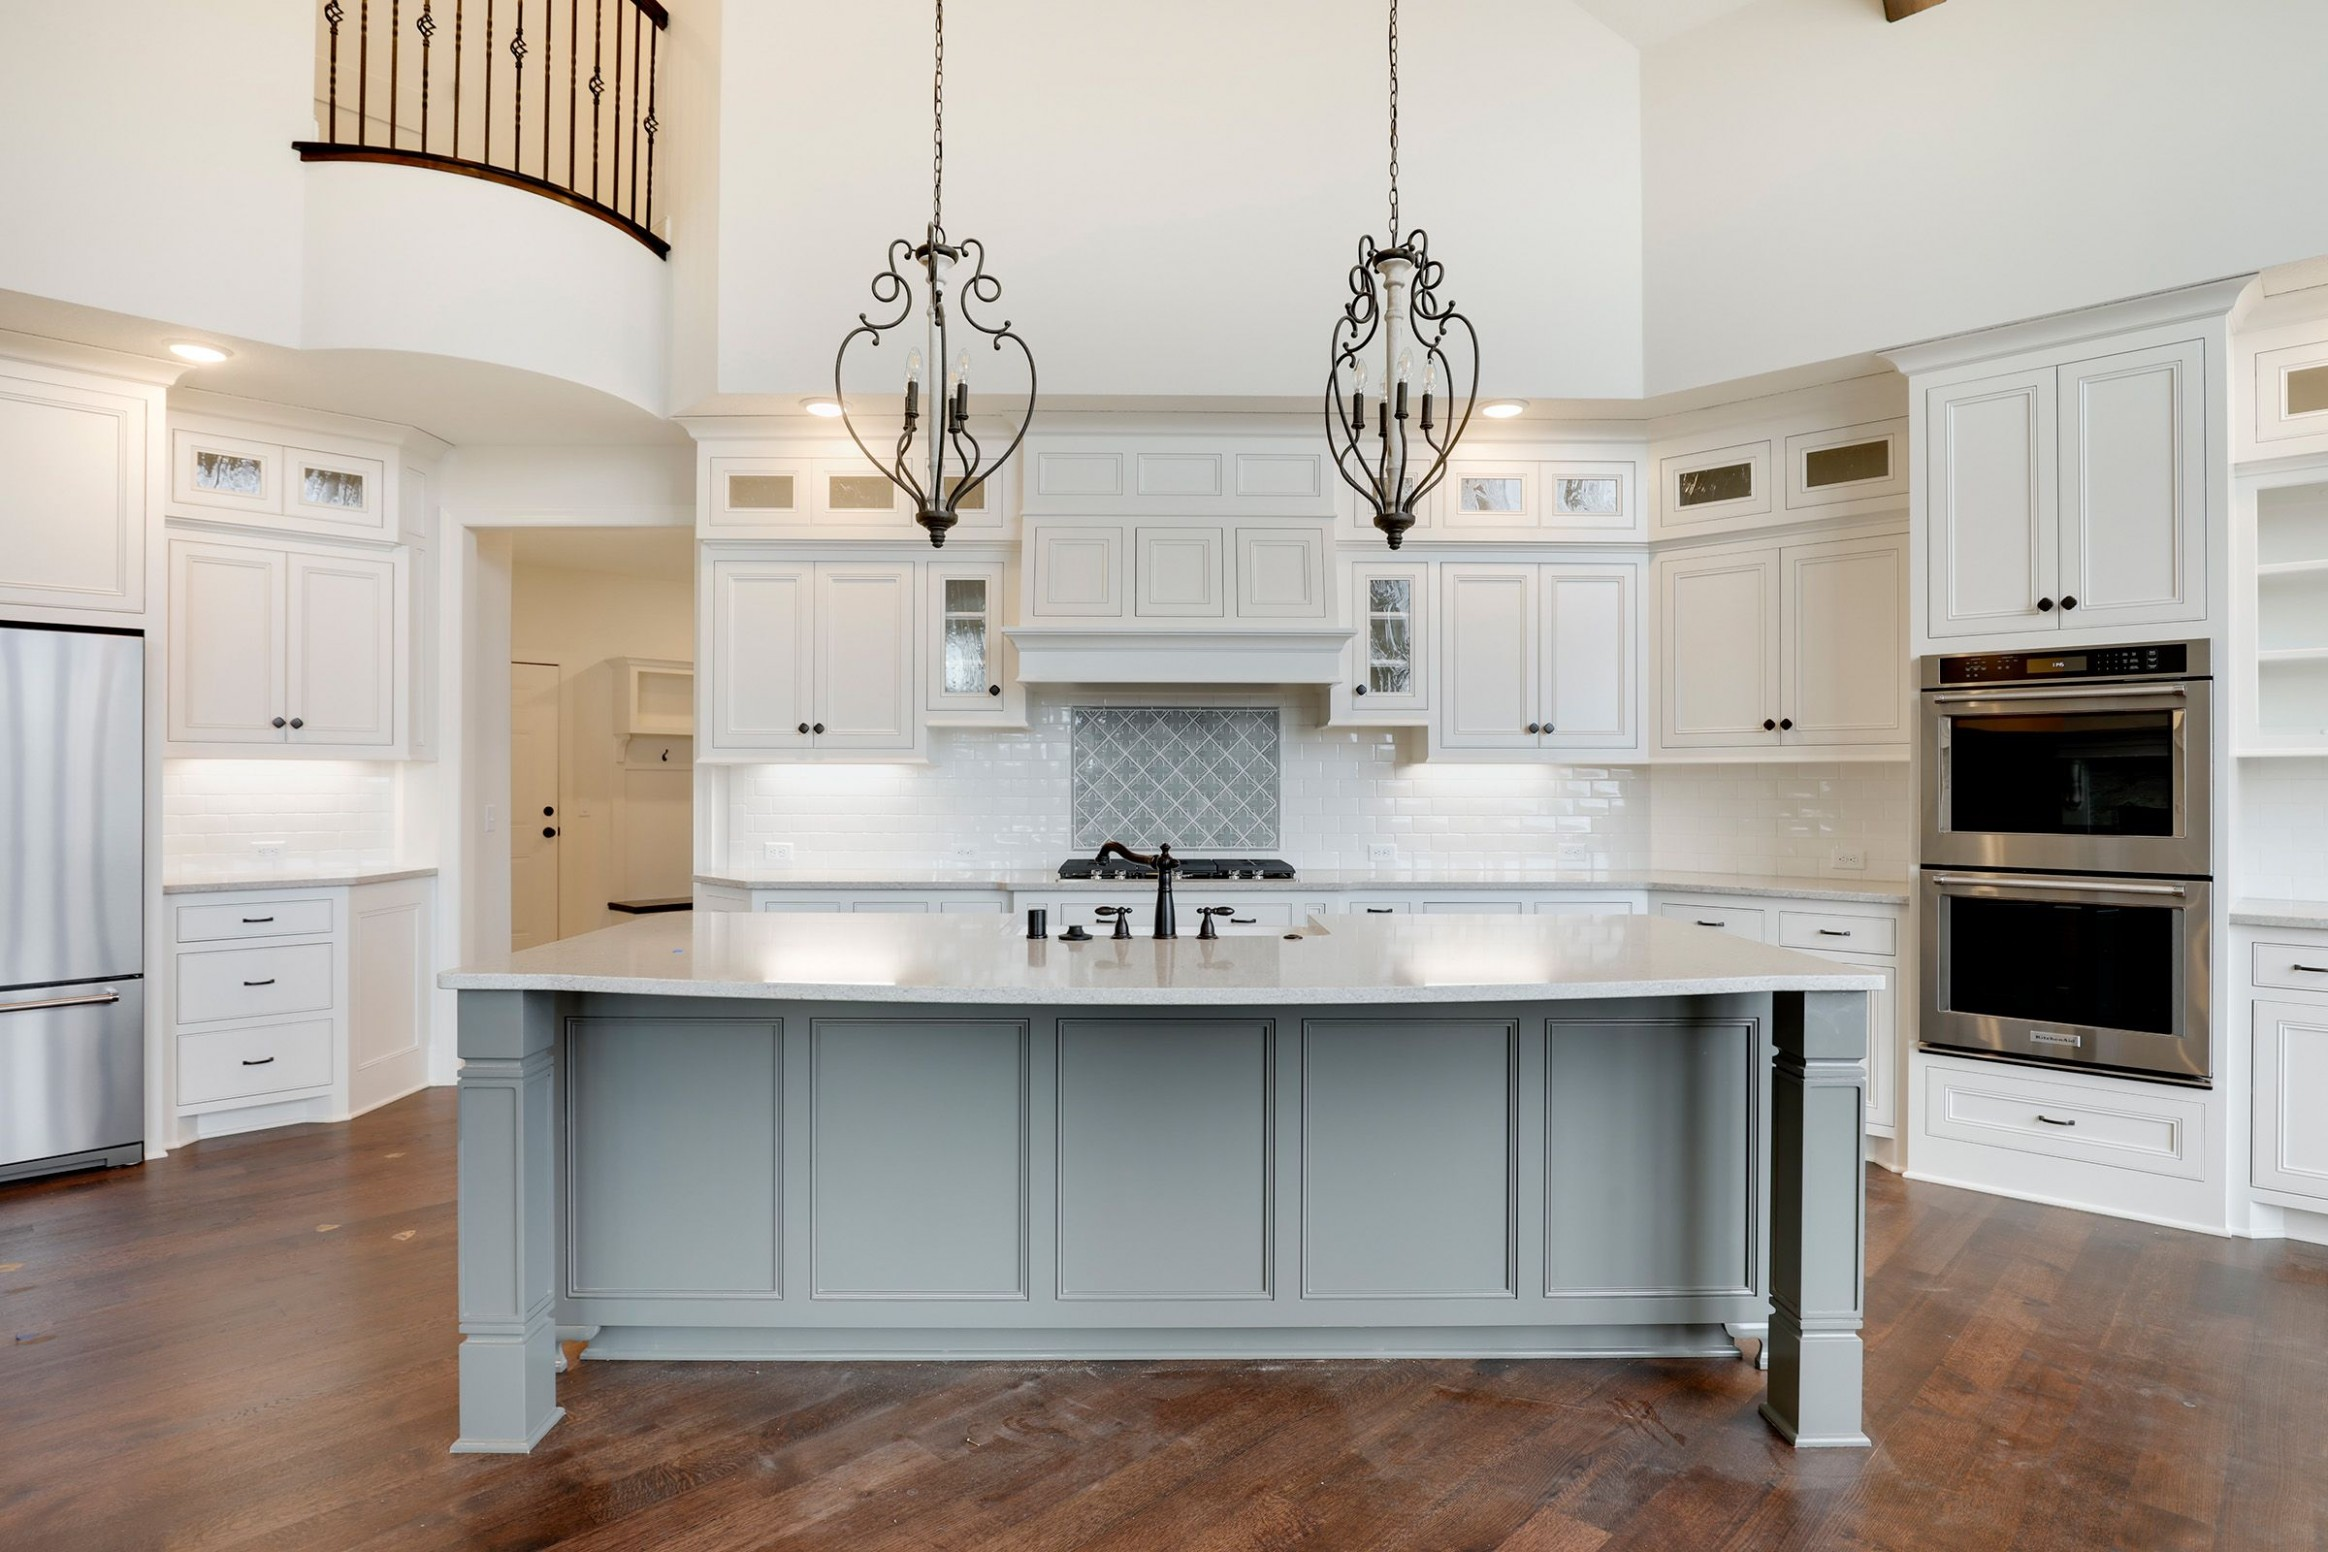 Hanson Builders Custom Kitchen in 11  New homes for sale  - Hanson Kitchen Cabinets